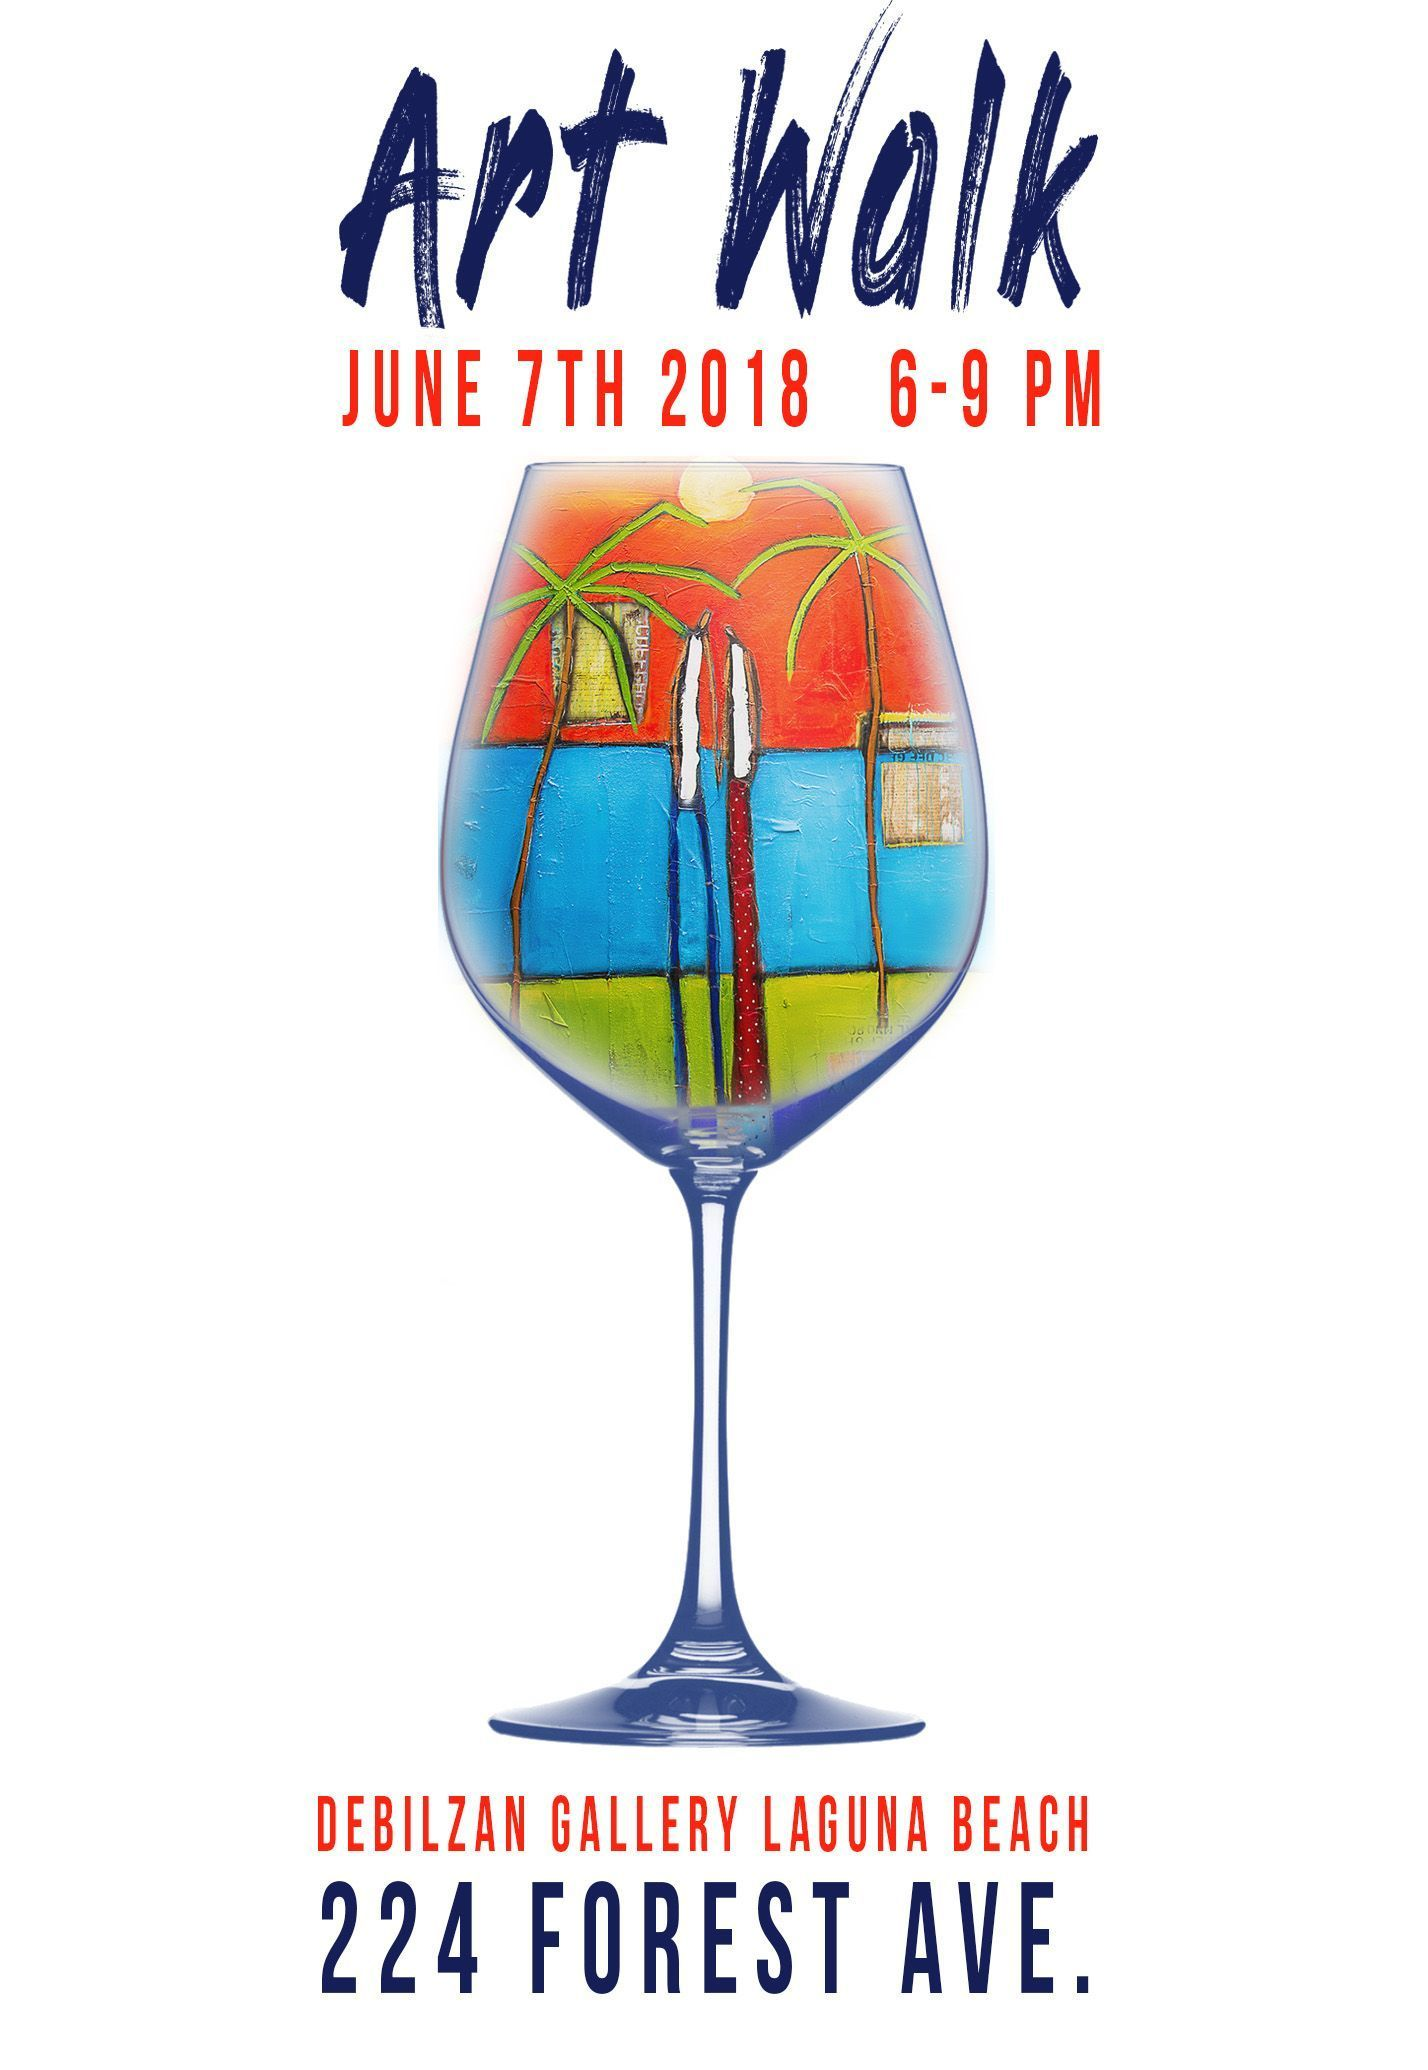 Join Us At The Debilzan Fine Art Gallery In Laguna Beach On Thursday June 7th From 6 9 Pm For A Complimentary Wine Tasting One Lucky Guest Will Win